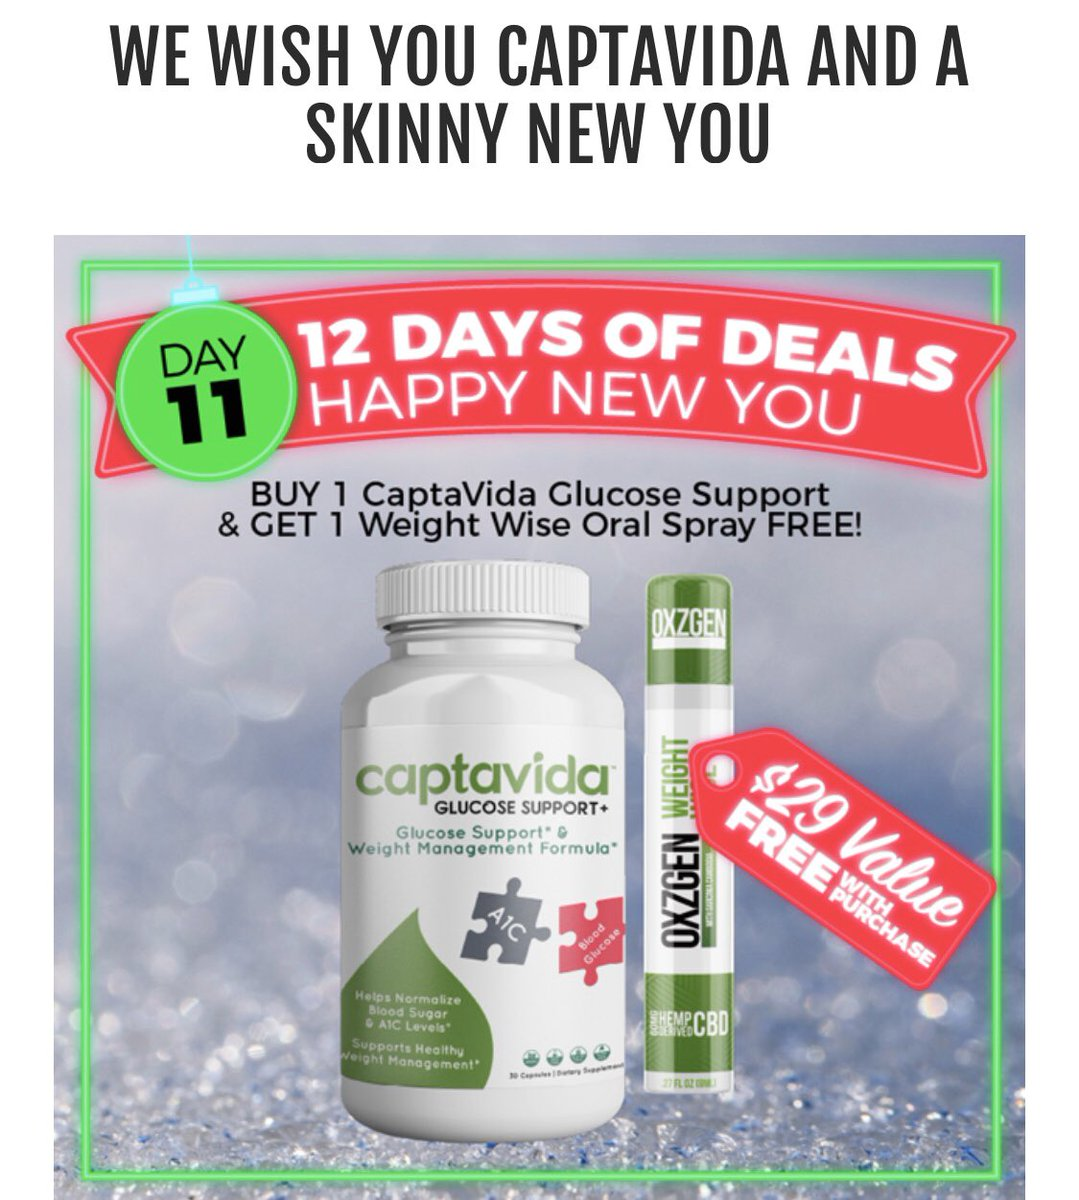 Day 11 When you get Captavida for #diabetes you get our new and improved weight loss spray for free!!!! http://Oxzgen.com/L664894 or call 18007999019 & use the code L664894  #cbd #hemp  #cannabisculture #cbdhealth #cbdcures #diabetes #weightloss #slim #skinny  #weightlossjourneypic.twitter.com/g42sNAdvJJ